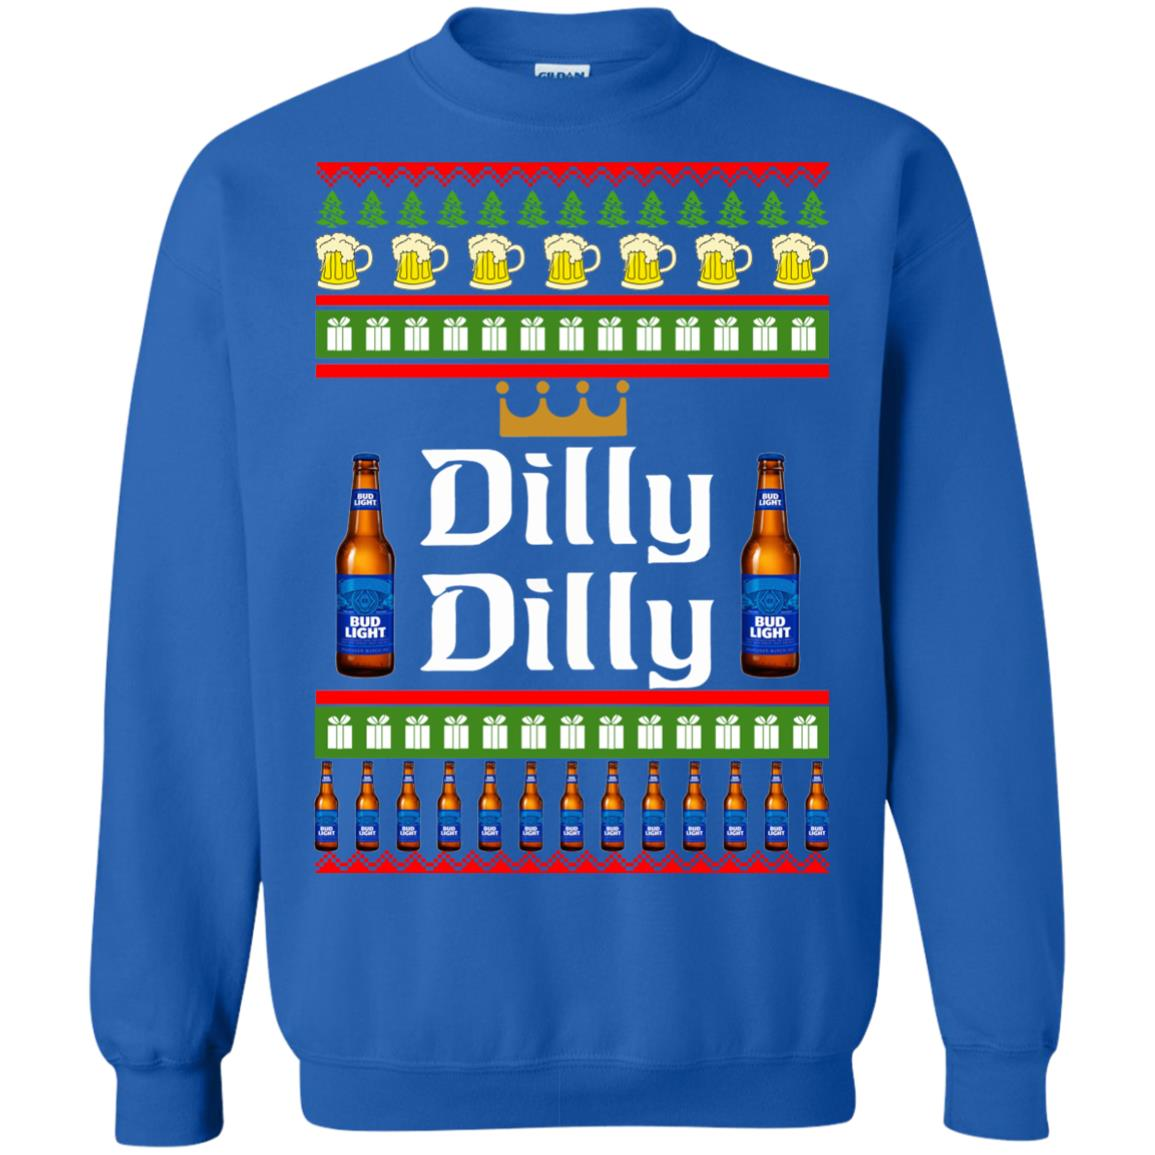 image 4240 - Bud Light: Dilly Dilly Ugly Sweater, Christmas Sweatshirts